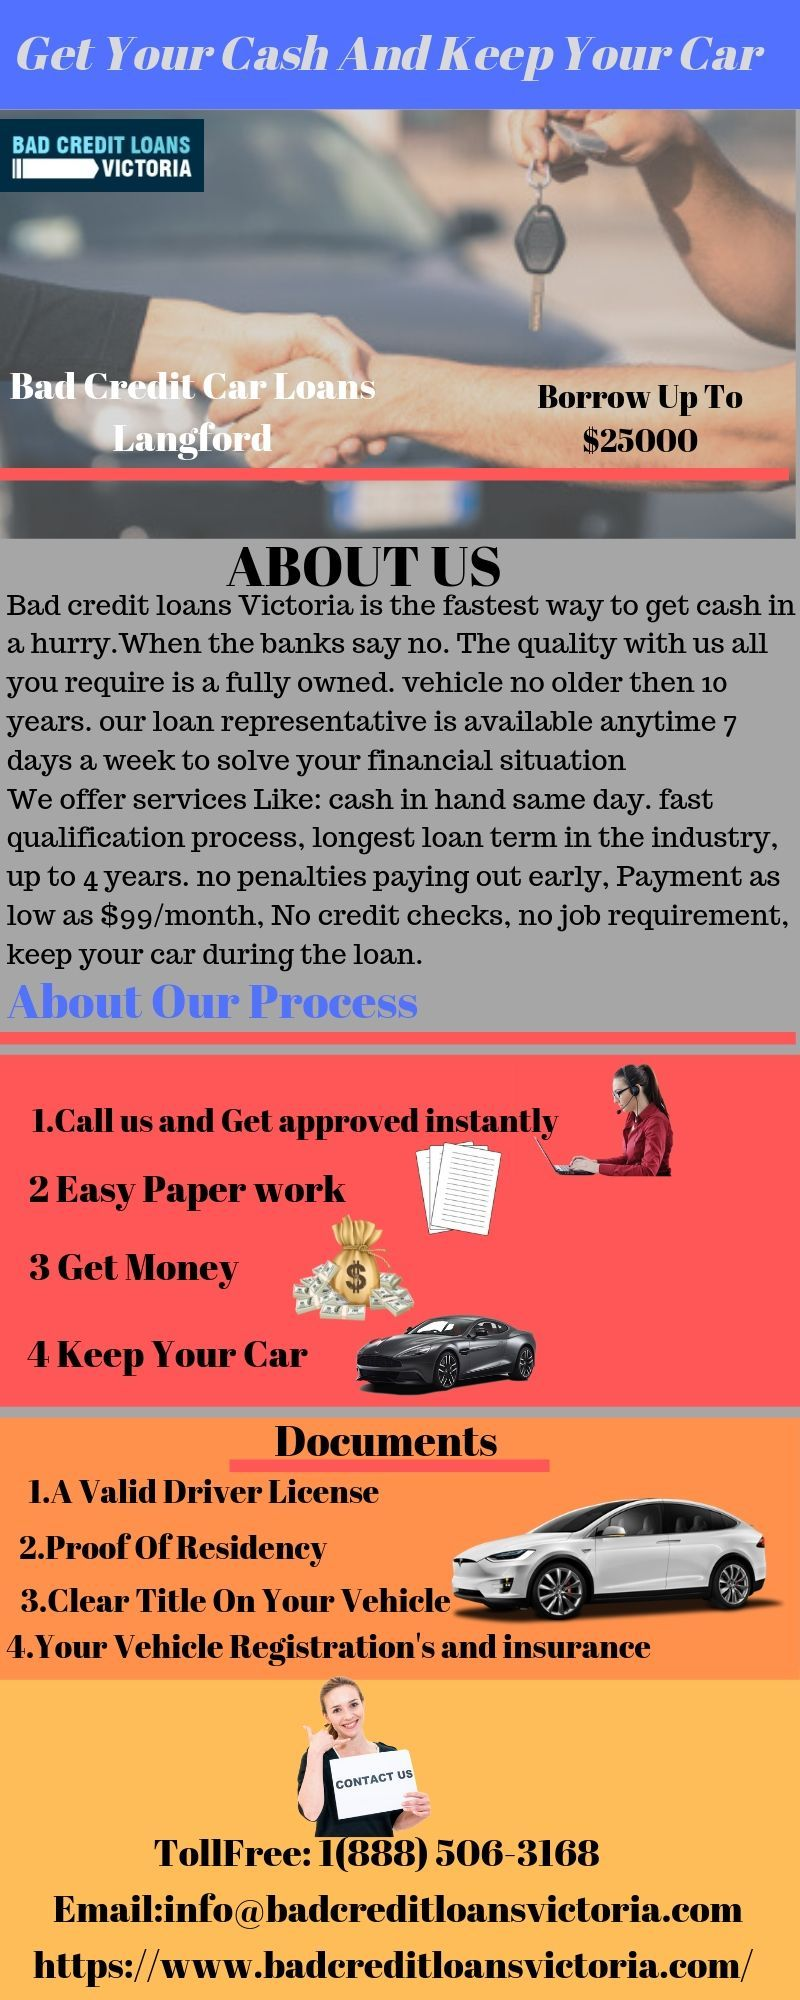 Apply for car title loan in Langford by bad credit loans